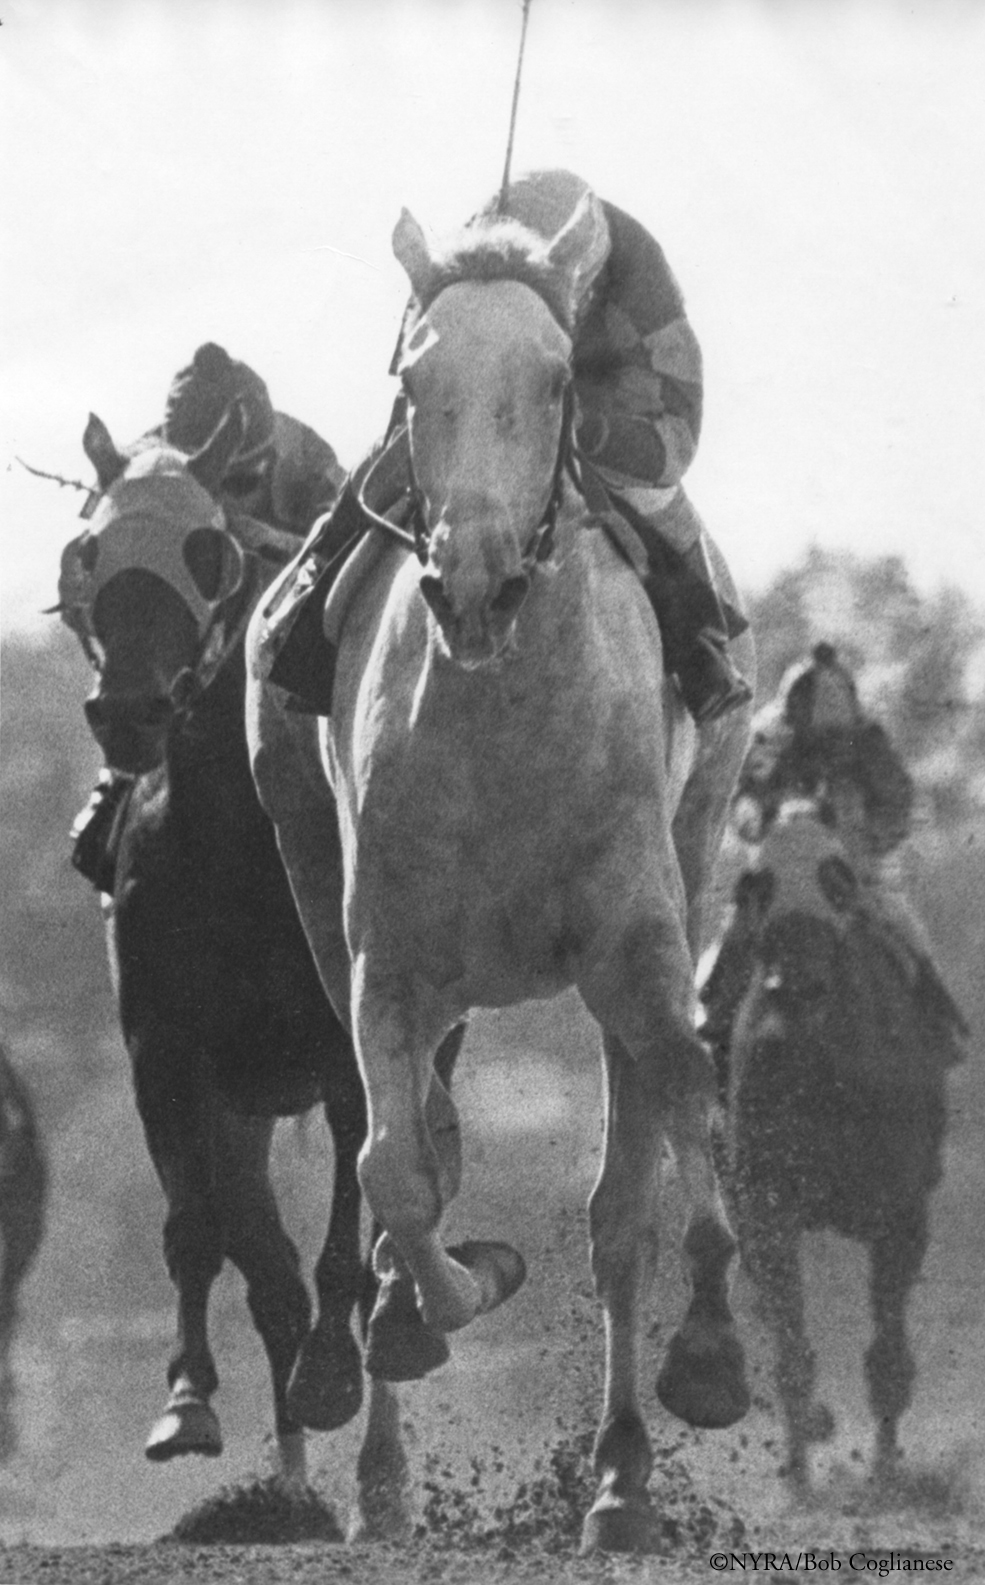 Heavenly Cause earned Eclipse Award honors among 2-year-old fillies in 1980, giving Jim Ryan a repeat unequaled by a Maryland breeder.